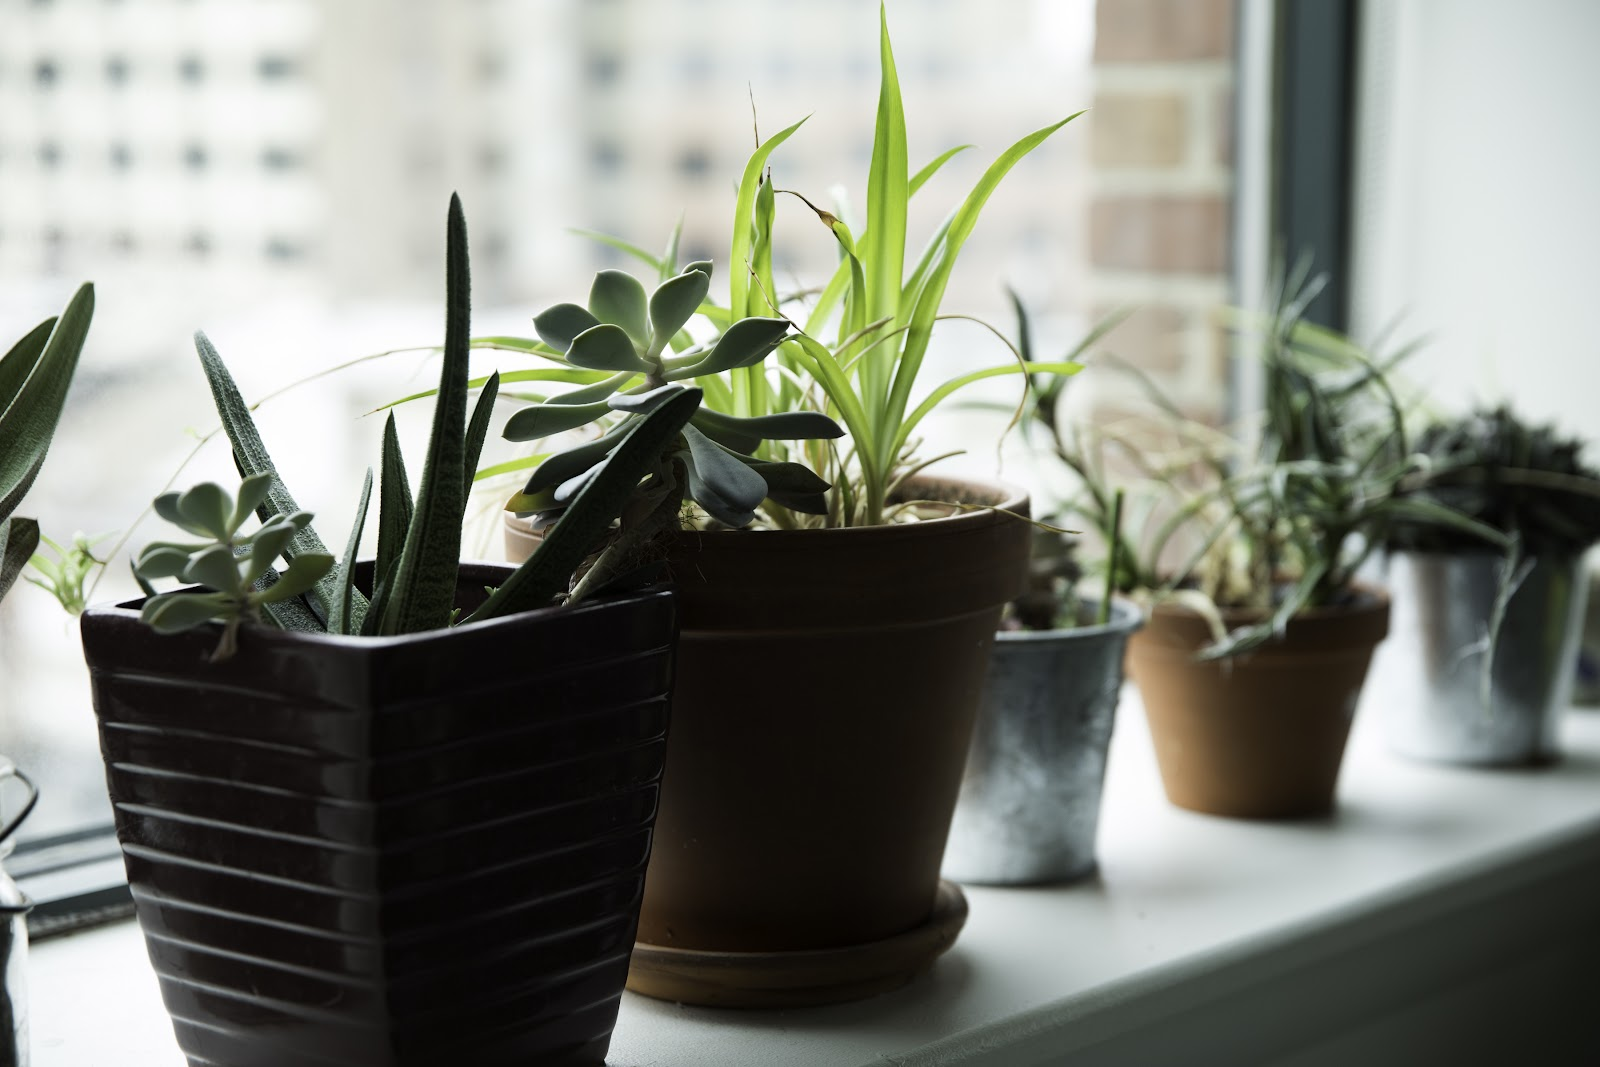 Plants in a windowsill